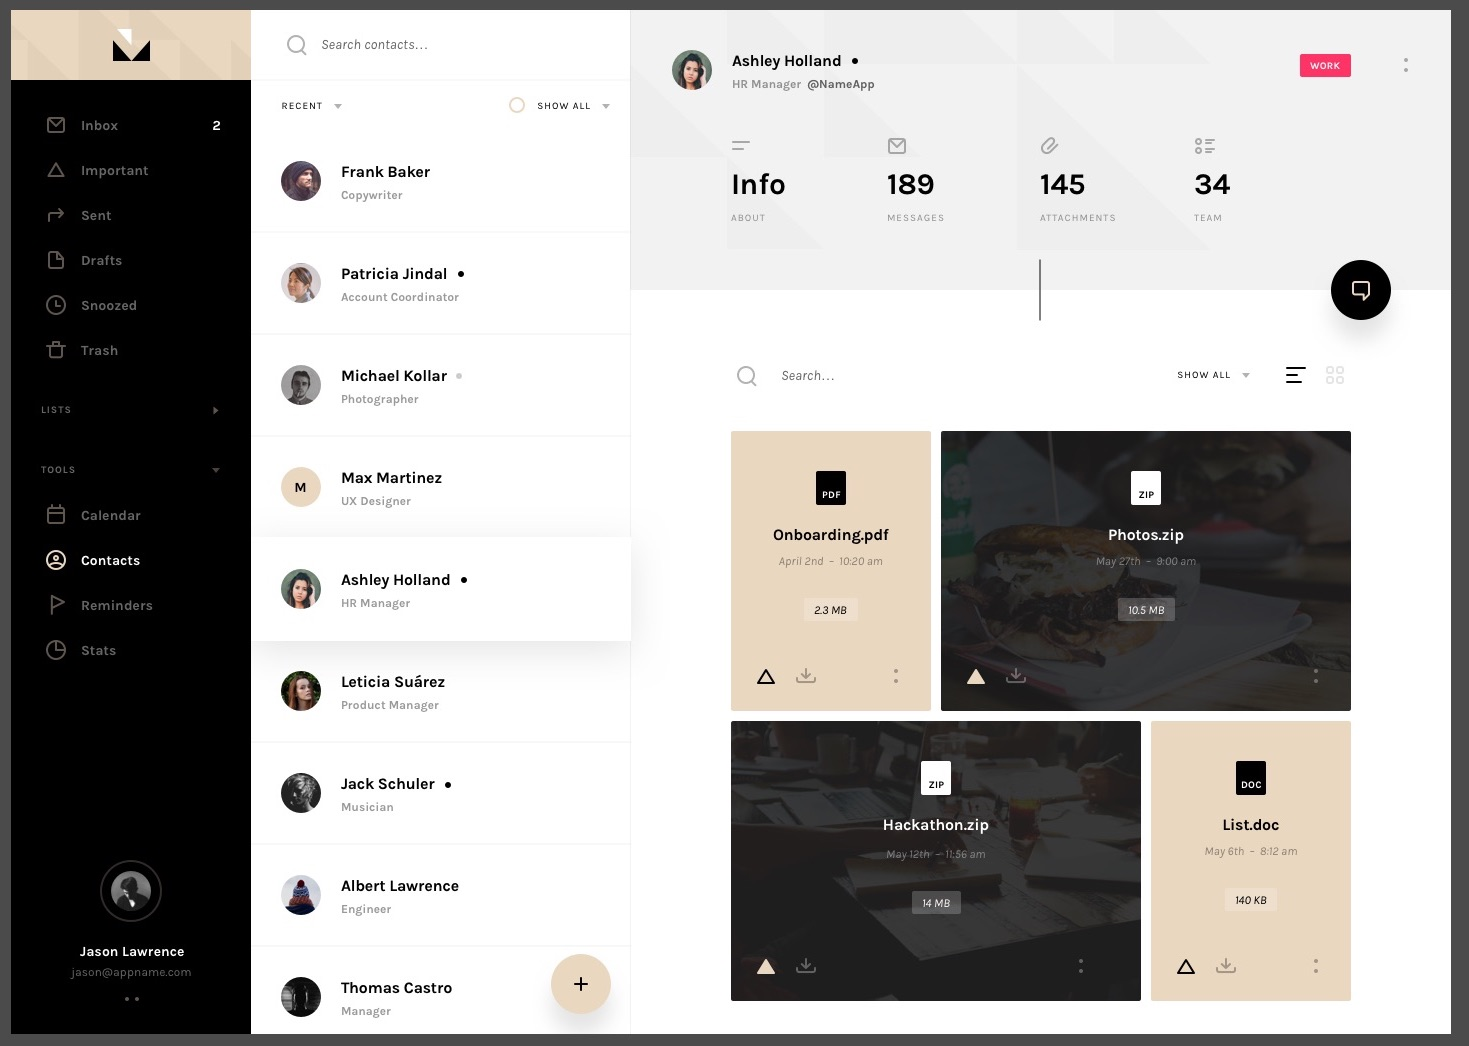 Mail social app UI kit from invision. Free UI kit for making intuitive user experiences and interfaces.